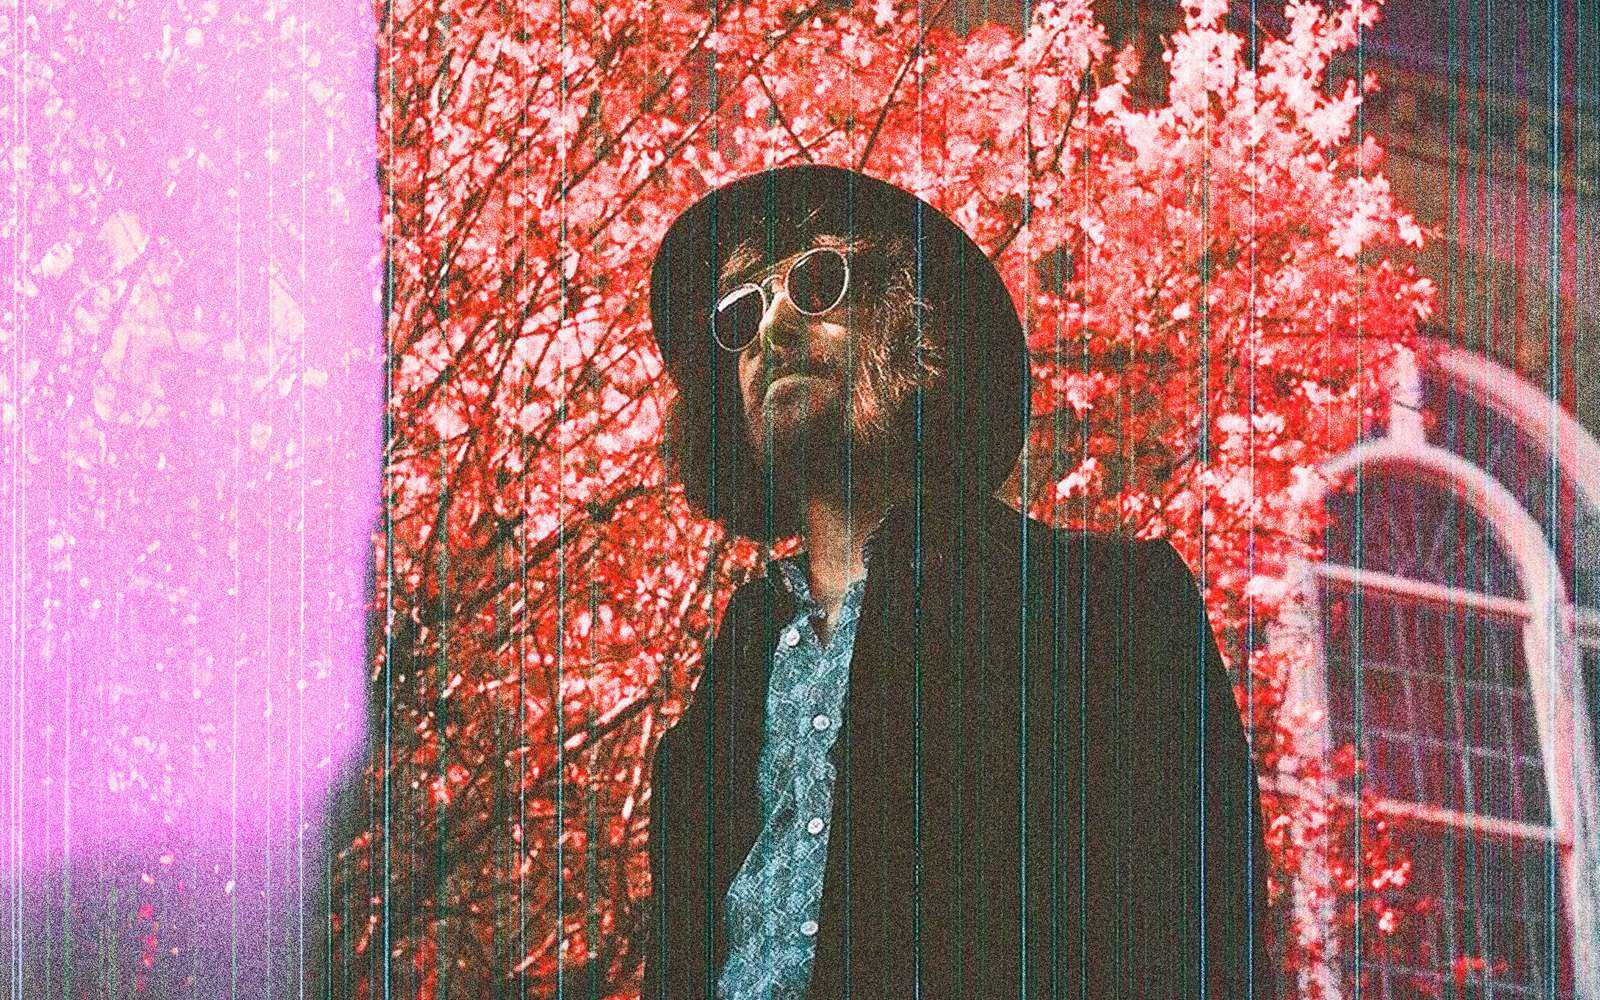 The Coral's PAUL MALLOY shares video for new single 'My Madonna' - Watch Now